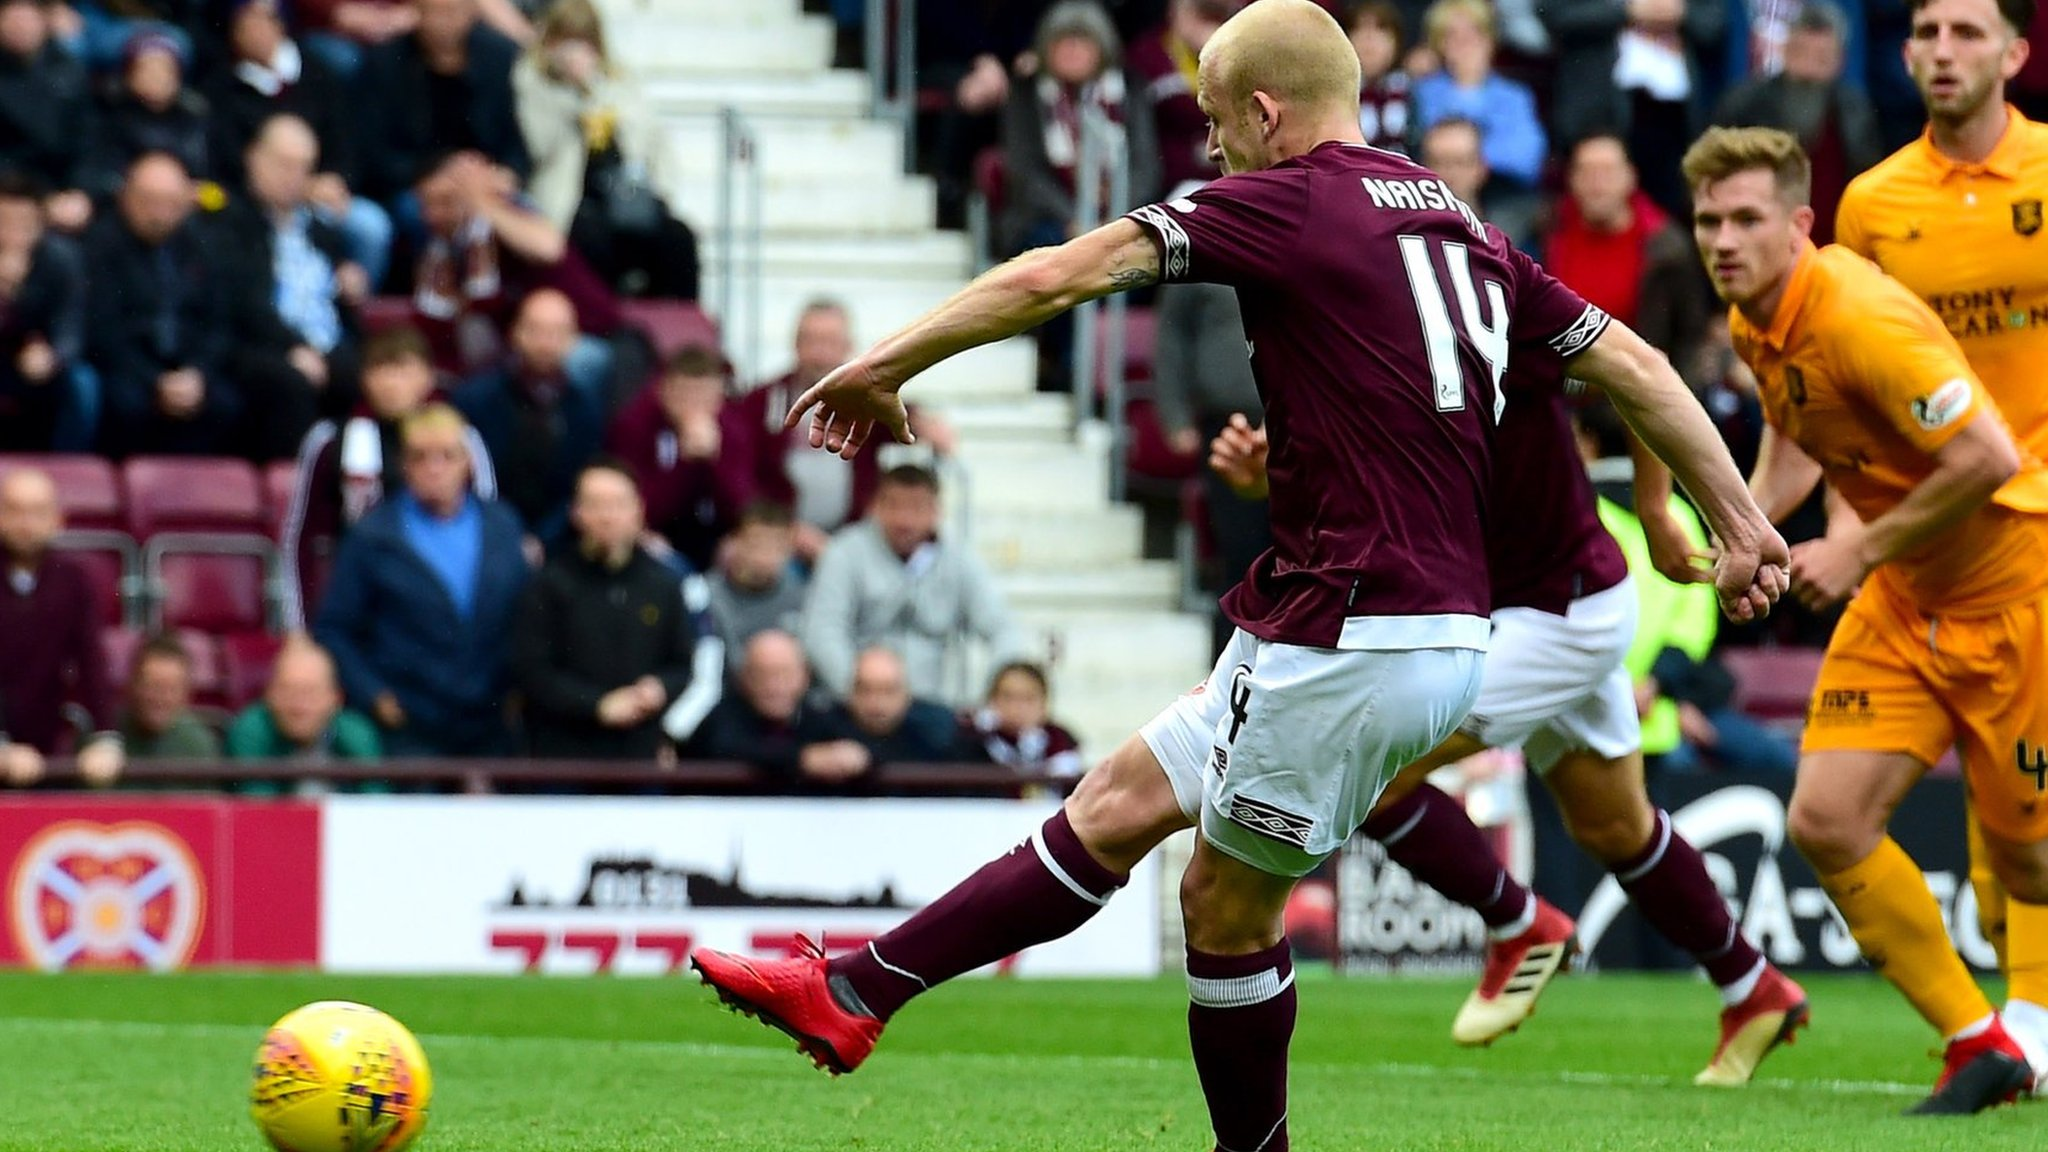 Hearts miss penalty as Livingston hold on